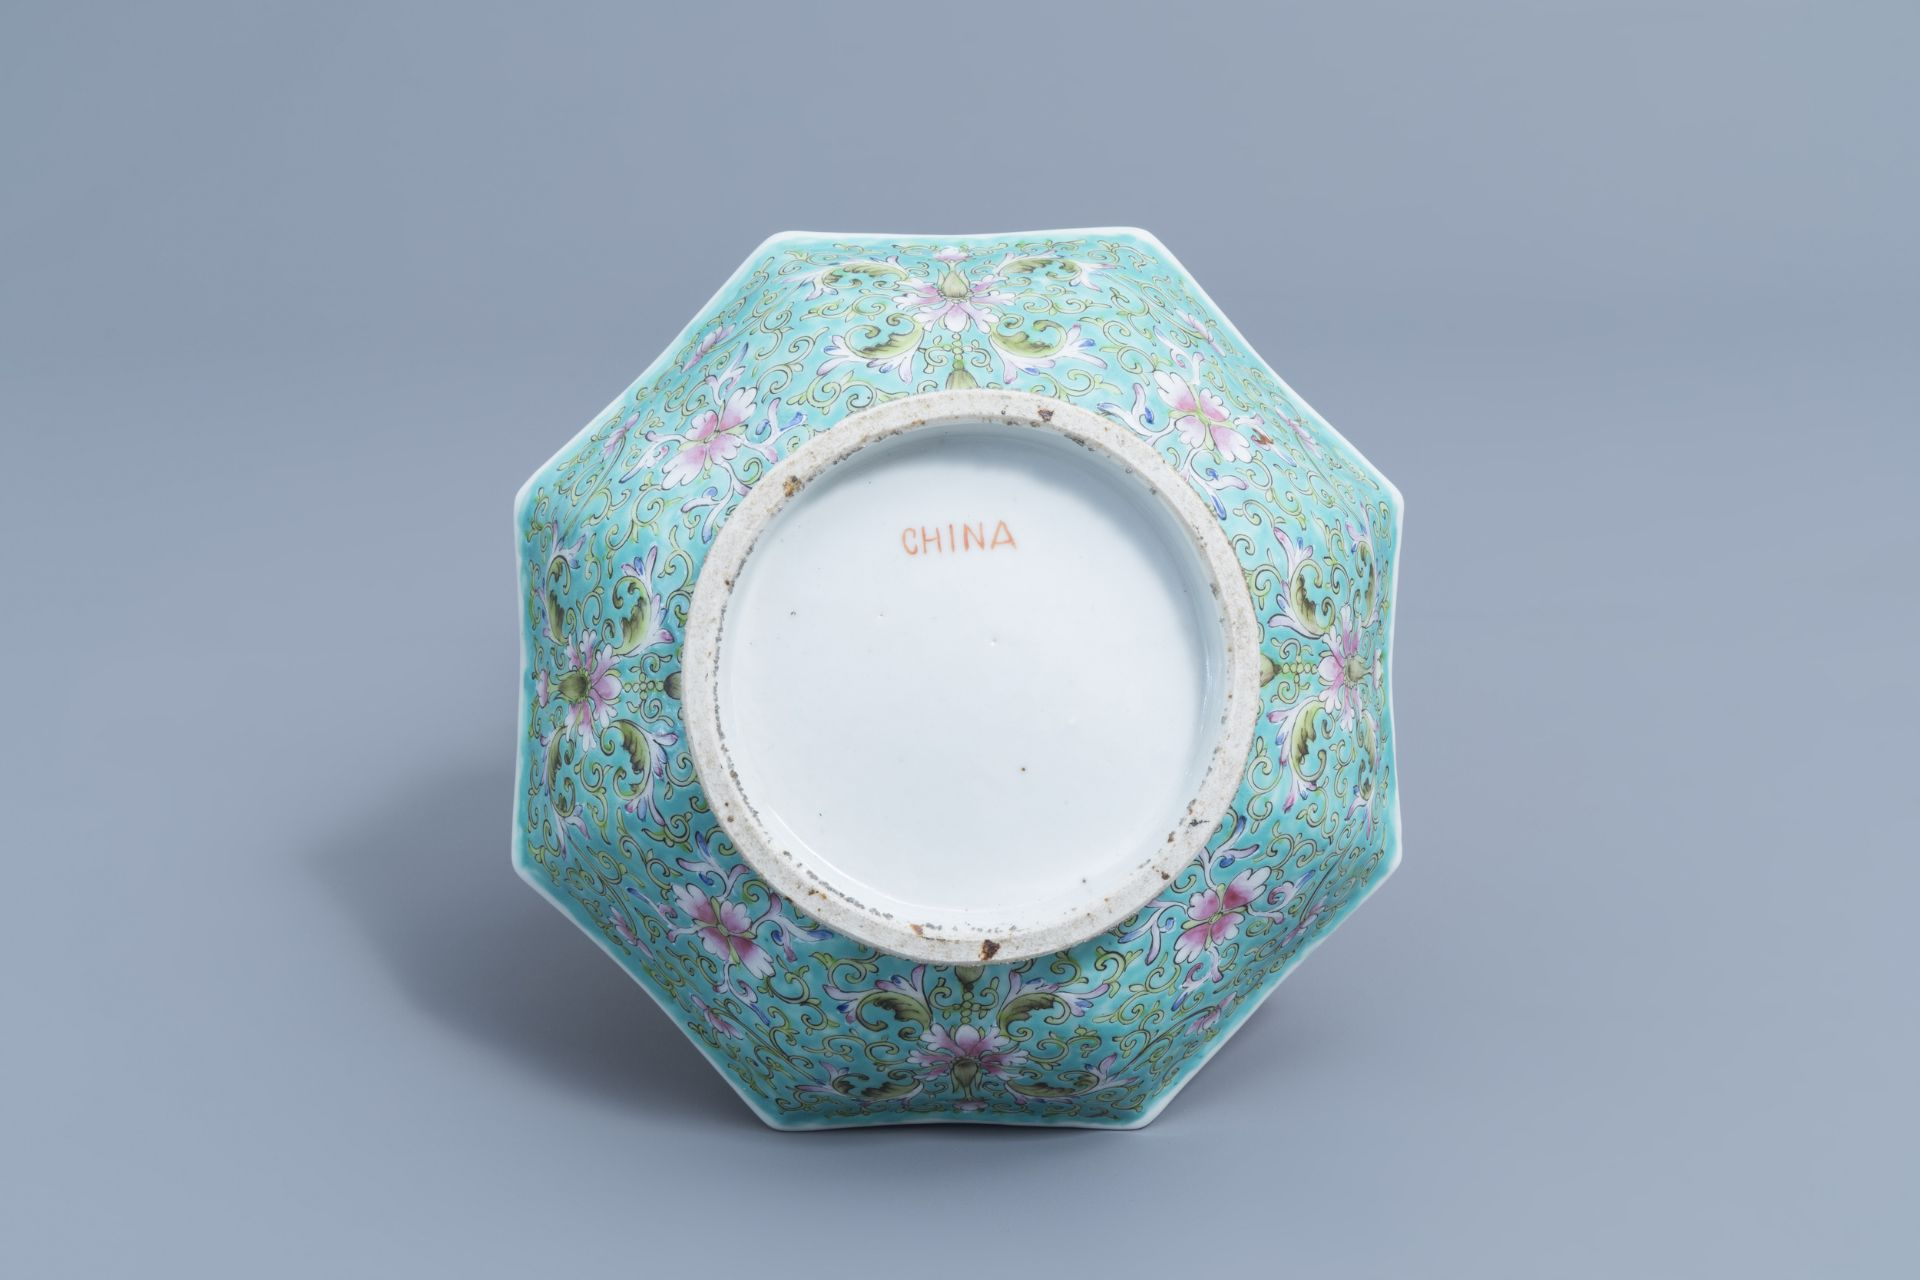 Two Chinese famille rose jardinires and a bowl with floral design, 20th C. - Image 15 of 15